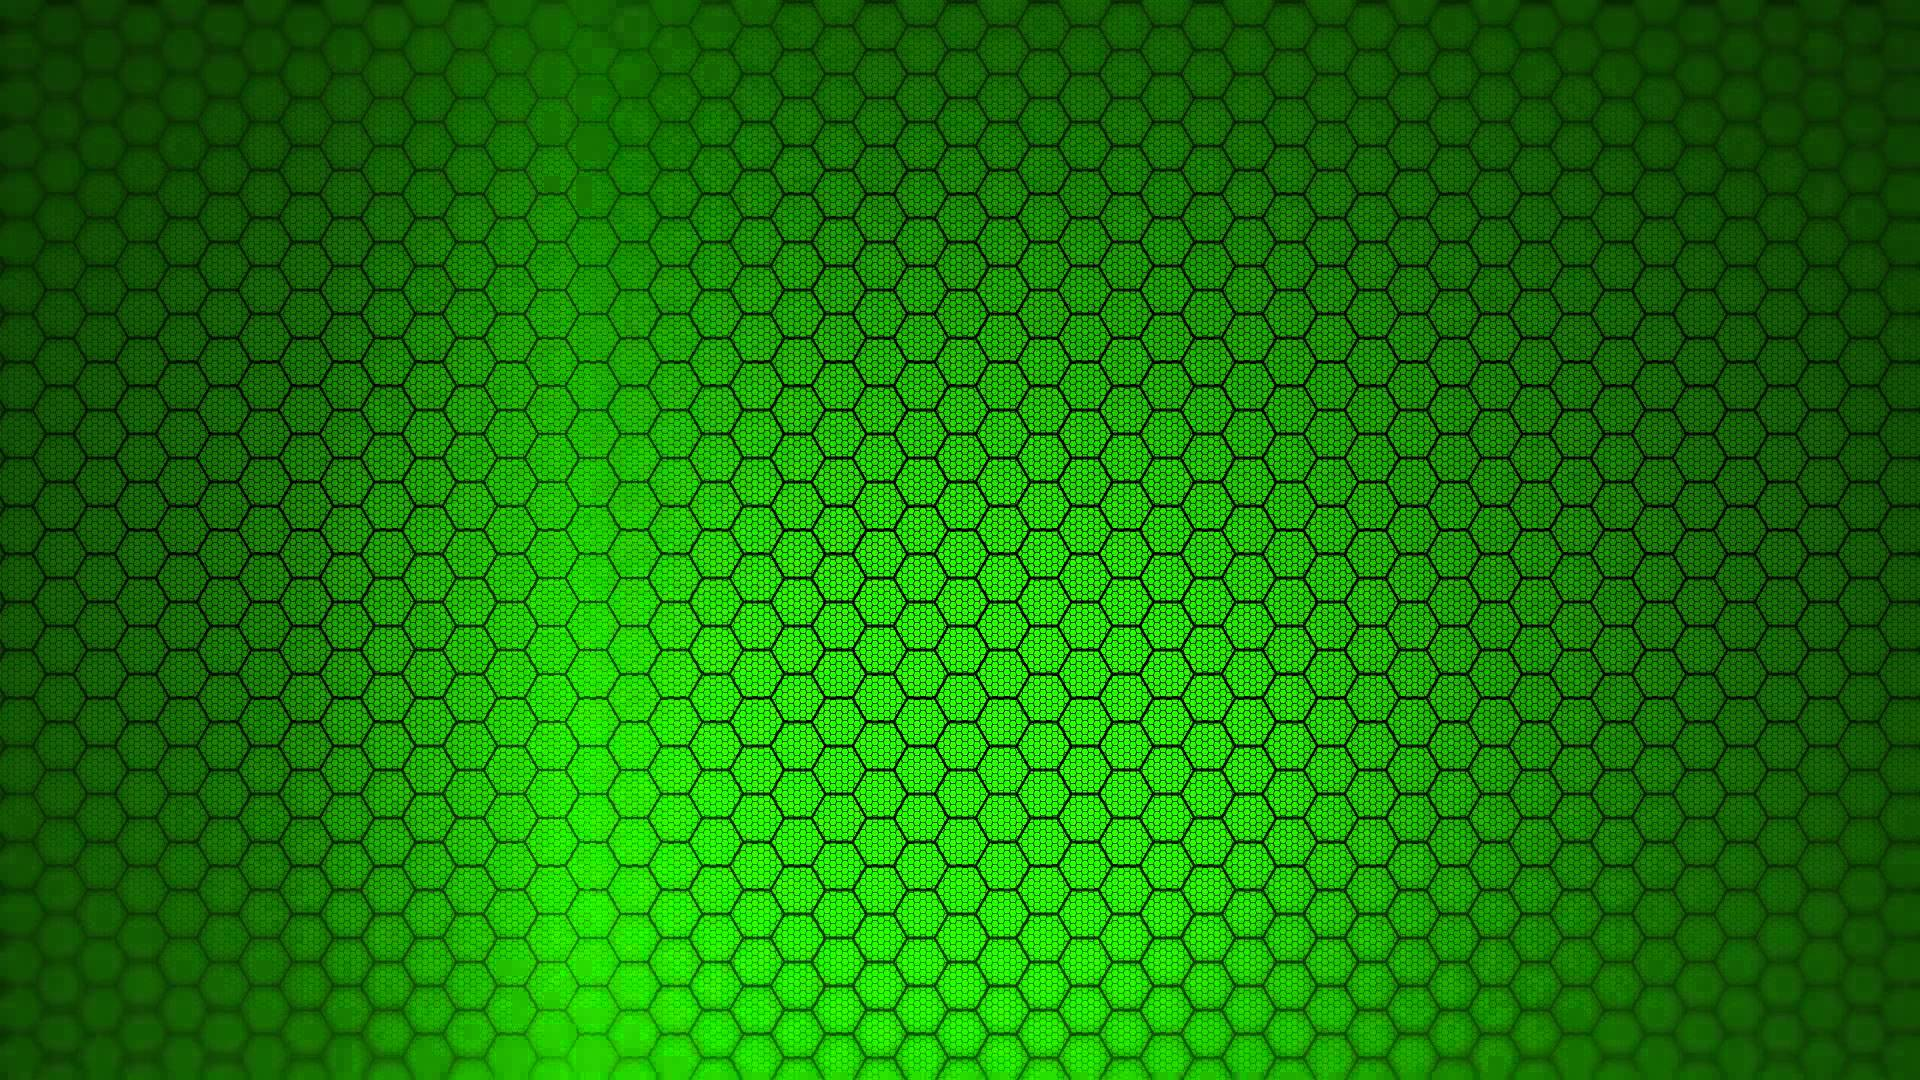 Awesome Art Green Background Wallpaper.